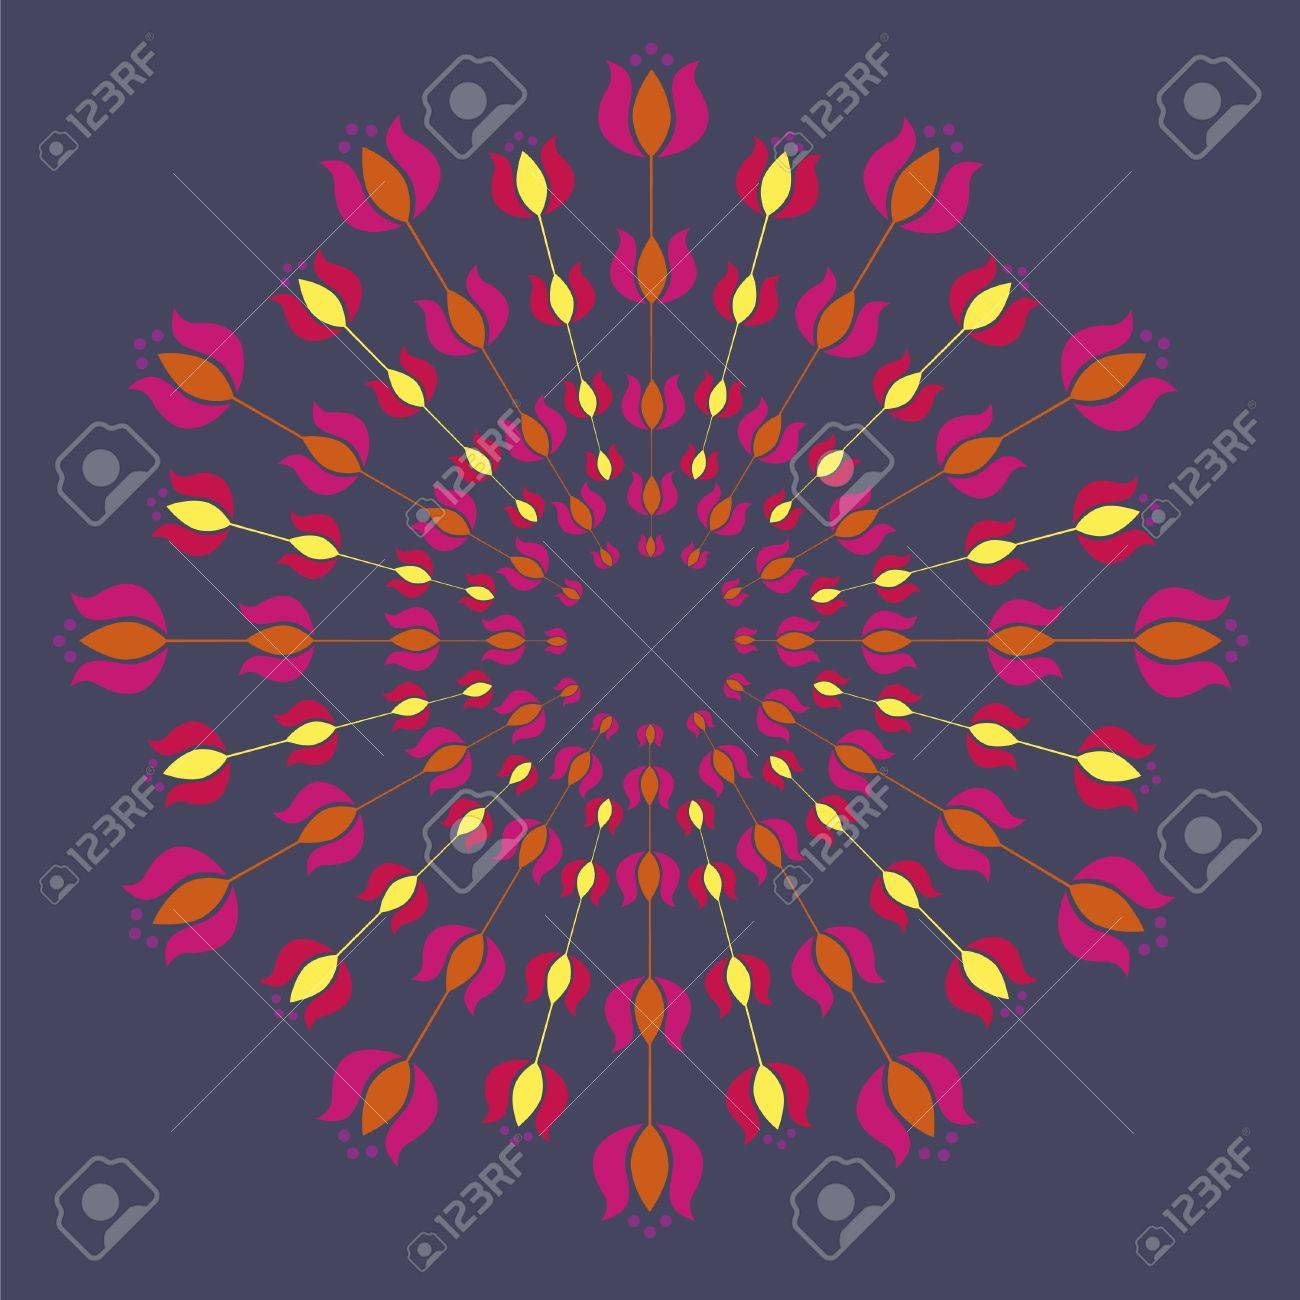 Floral detailed mandalas illustration Stock Vector - 18568610